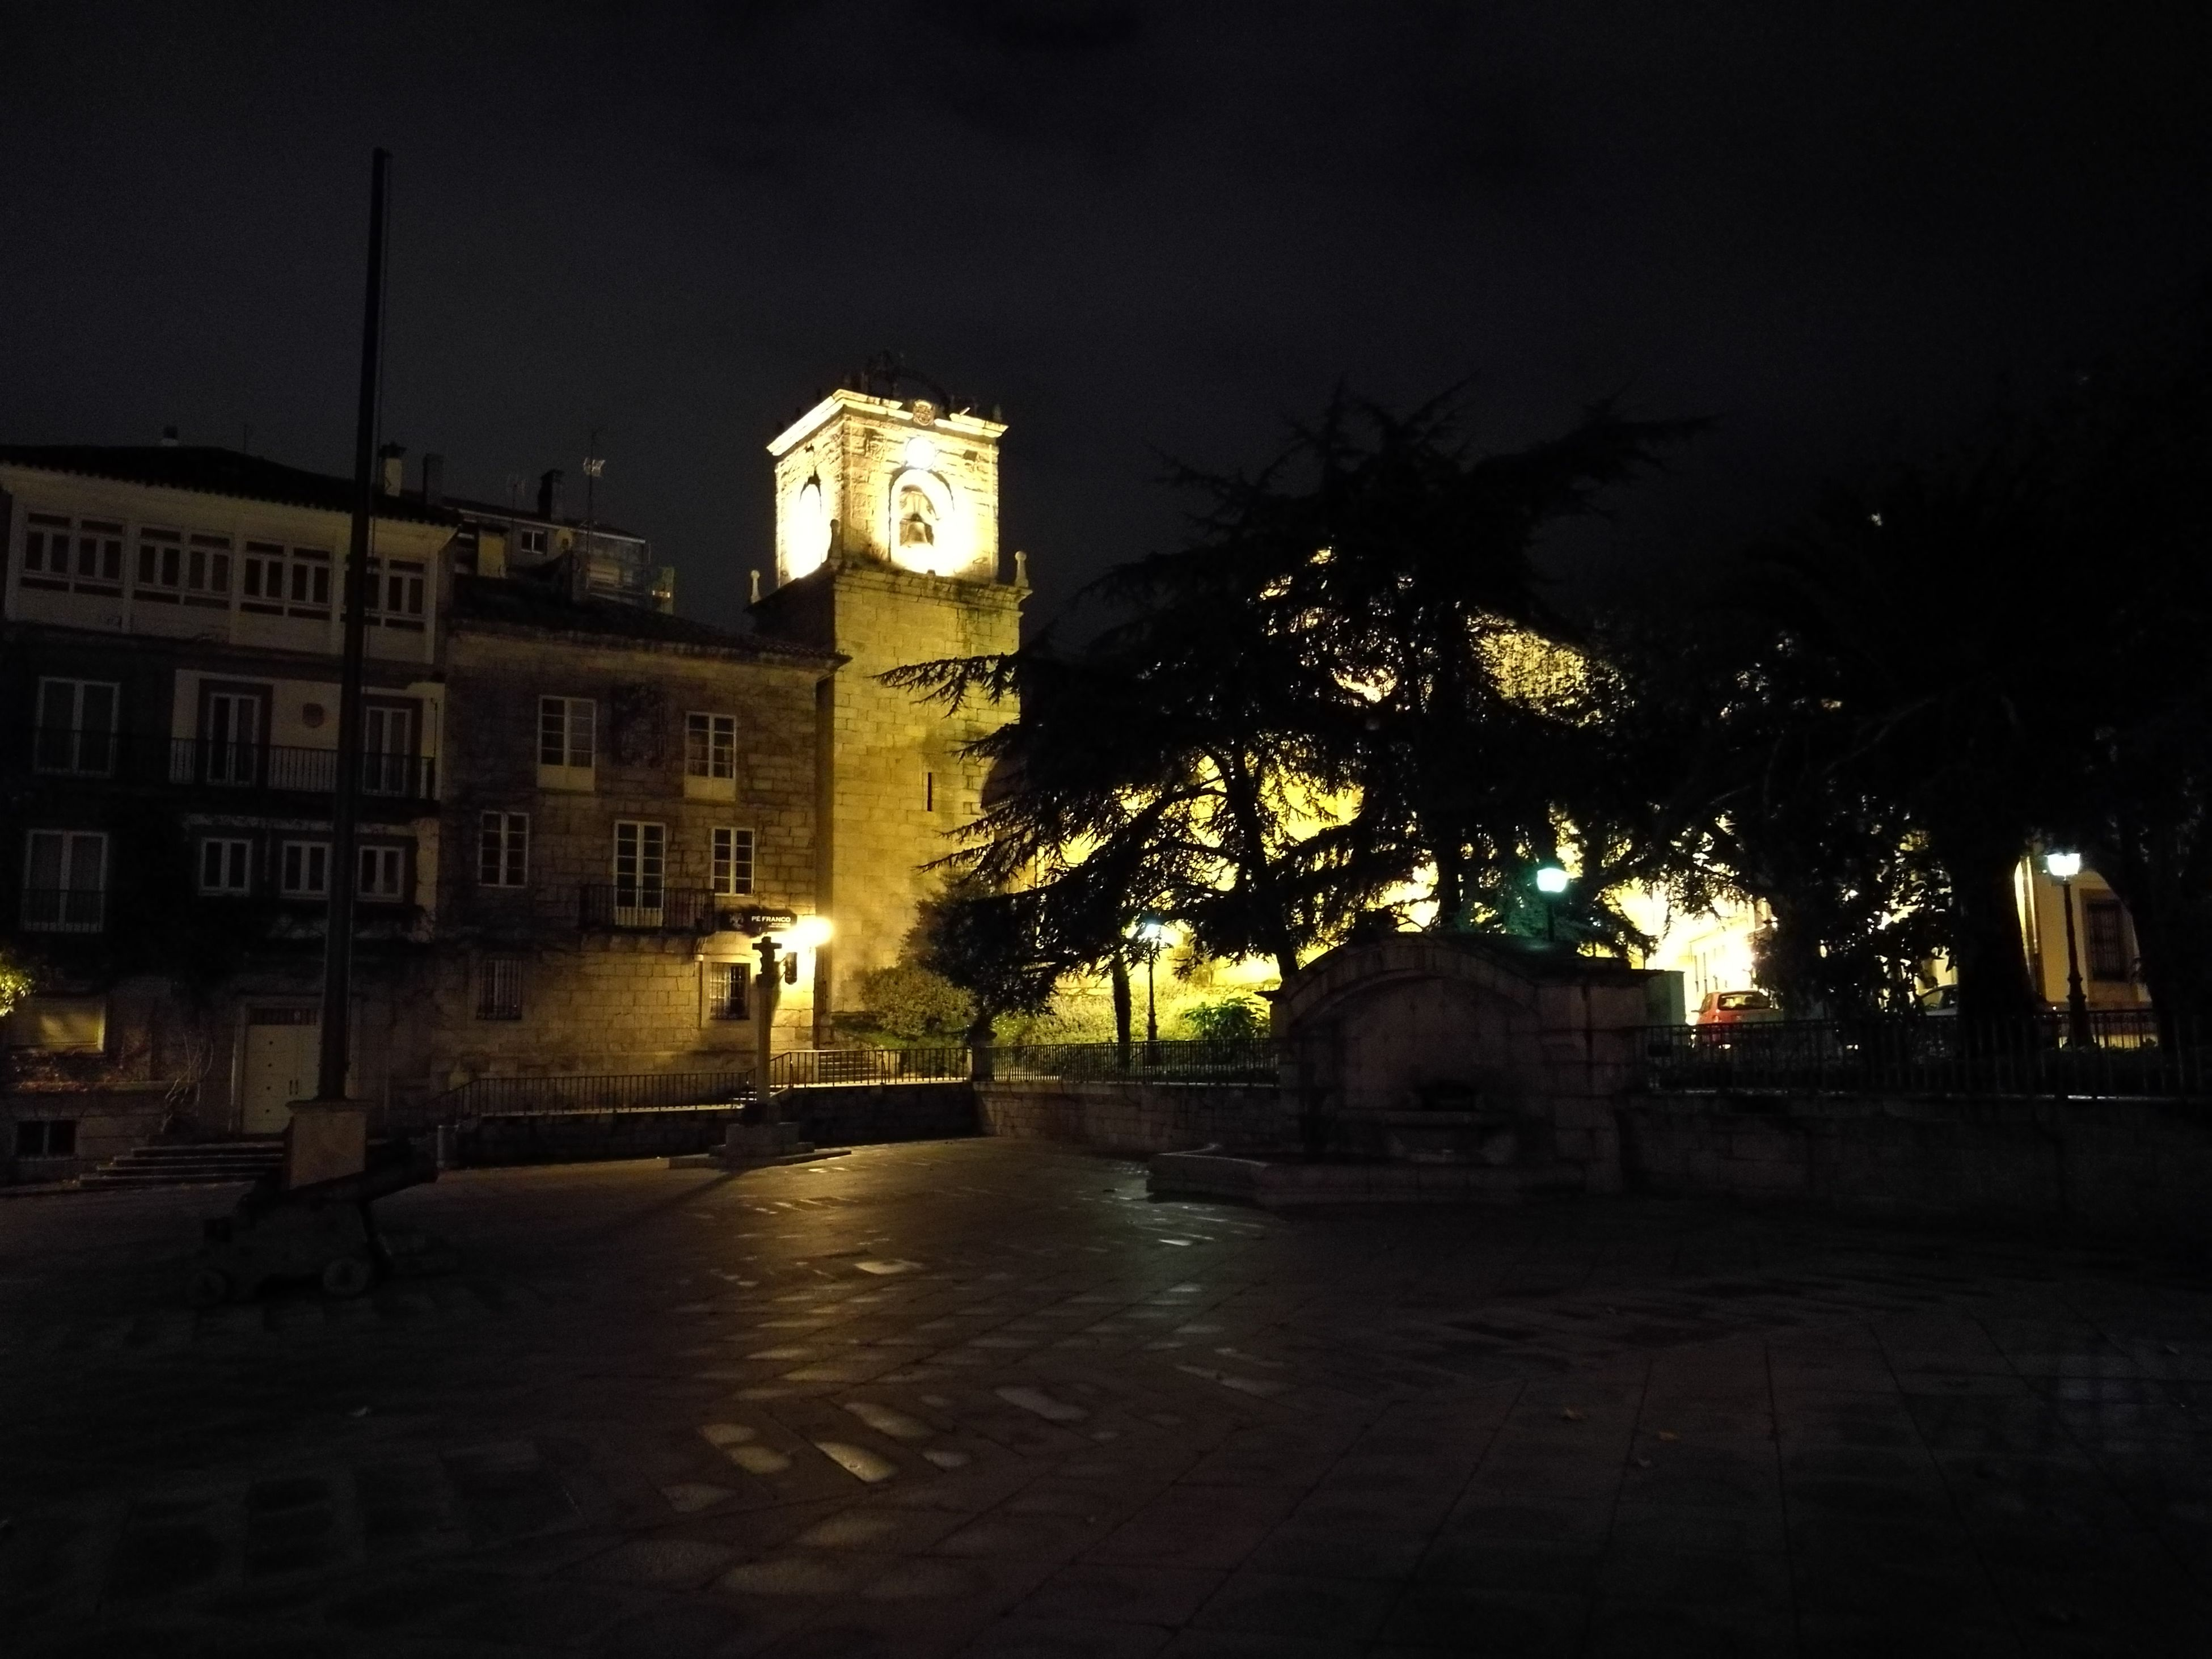 night, illuminated, building exterior, architecture, city, built structure, outdoors, tree, sky, no people, clock tower, clock